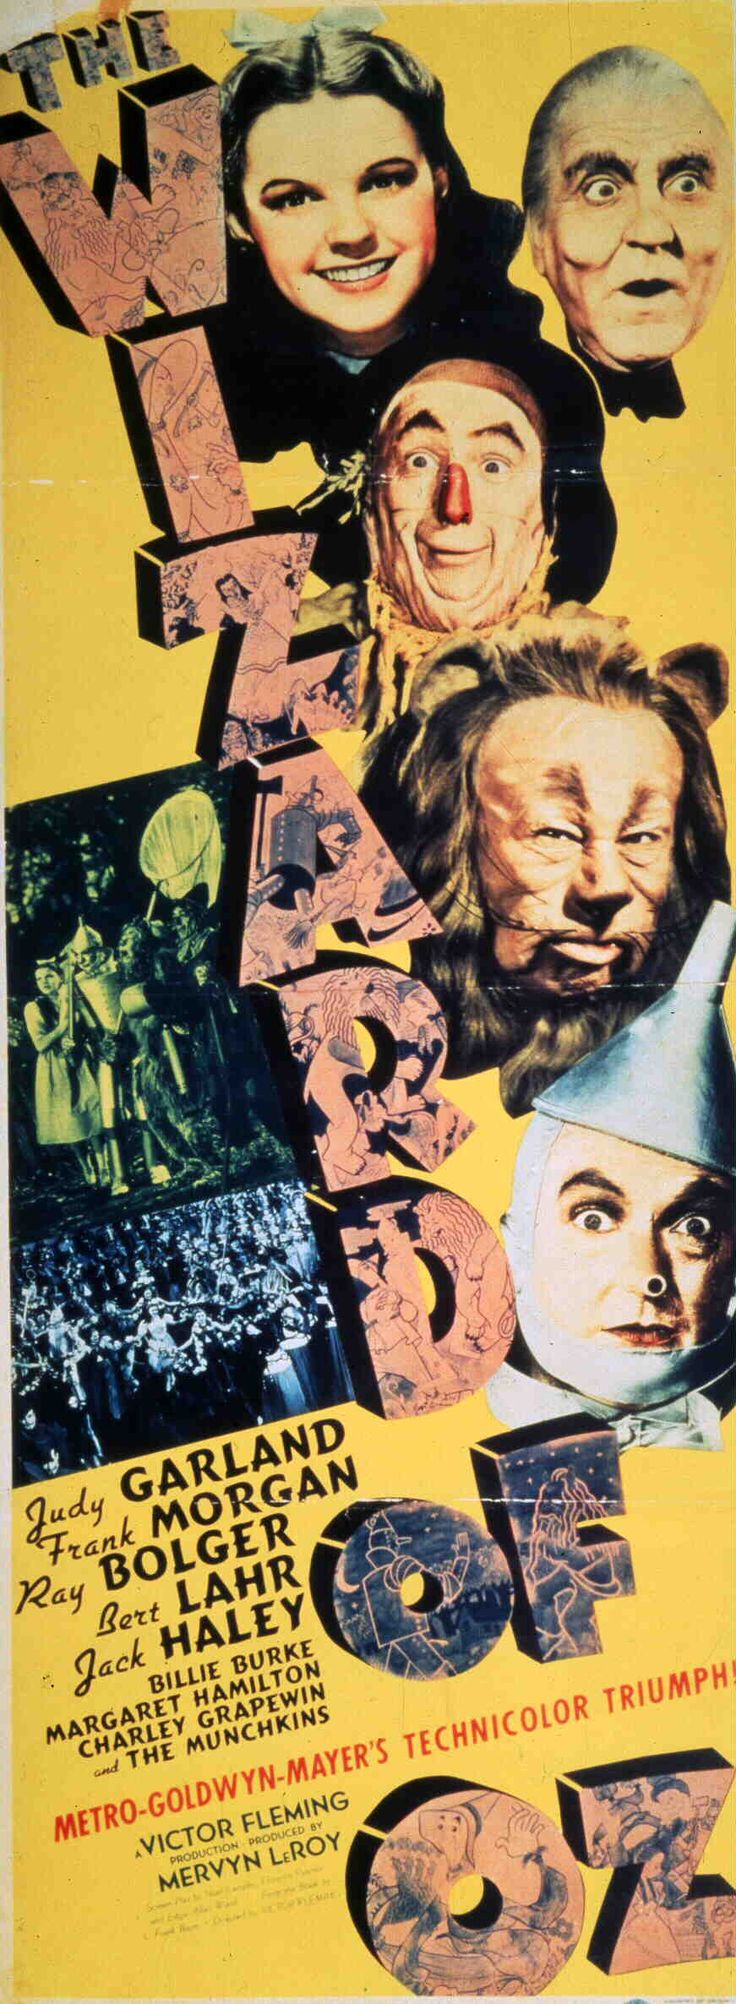 The Wizard of Oz (Insert poster featuring Judy Garland as Dorothy Gale, Frank Morgan as The Wizard, Bert Lahr as The Cowardly Lion, Jack Haley as The Tin Man and Ray Bolger as The Scarecrow.) via Turner Classic Movies